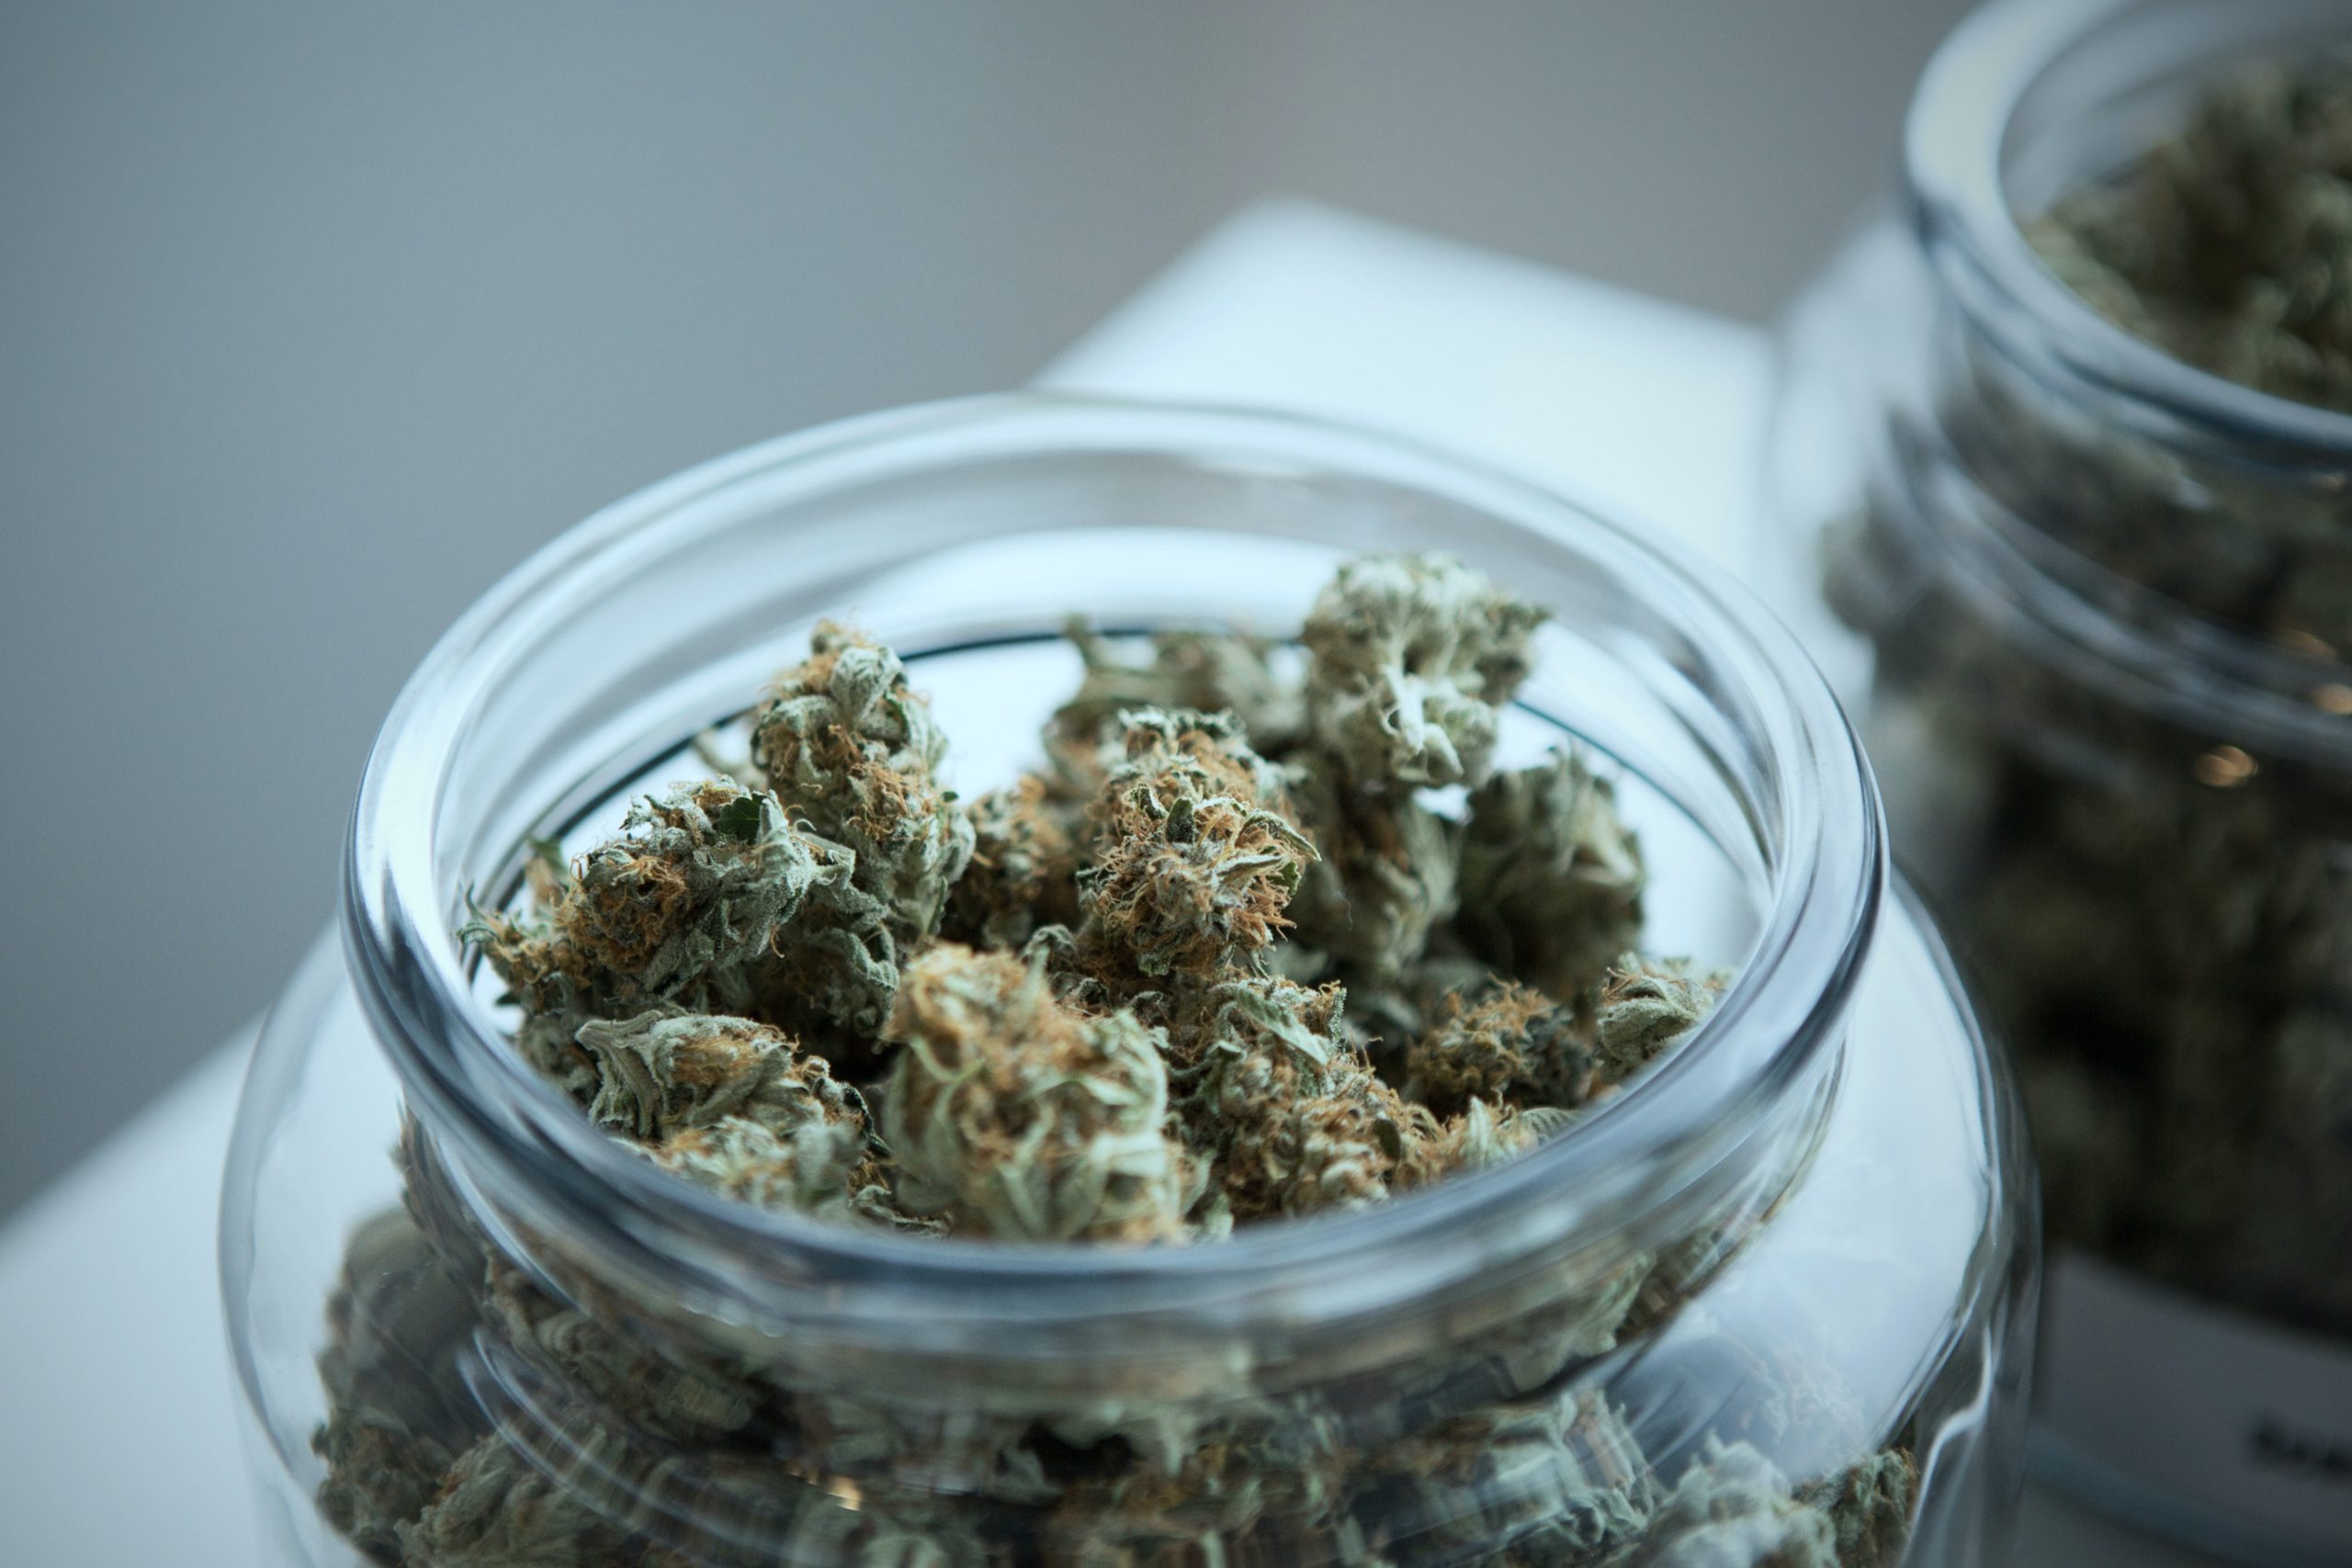 Two jars of medical cannabis